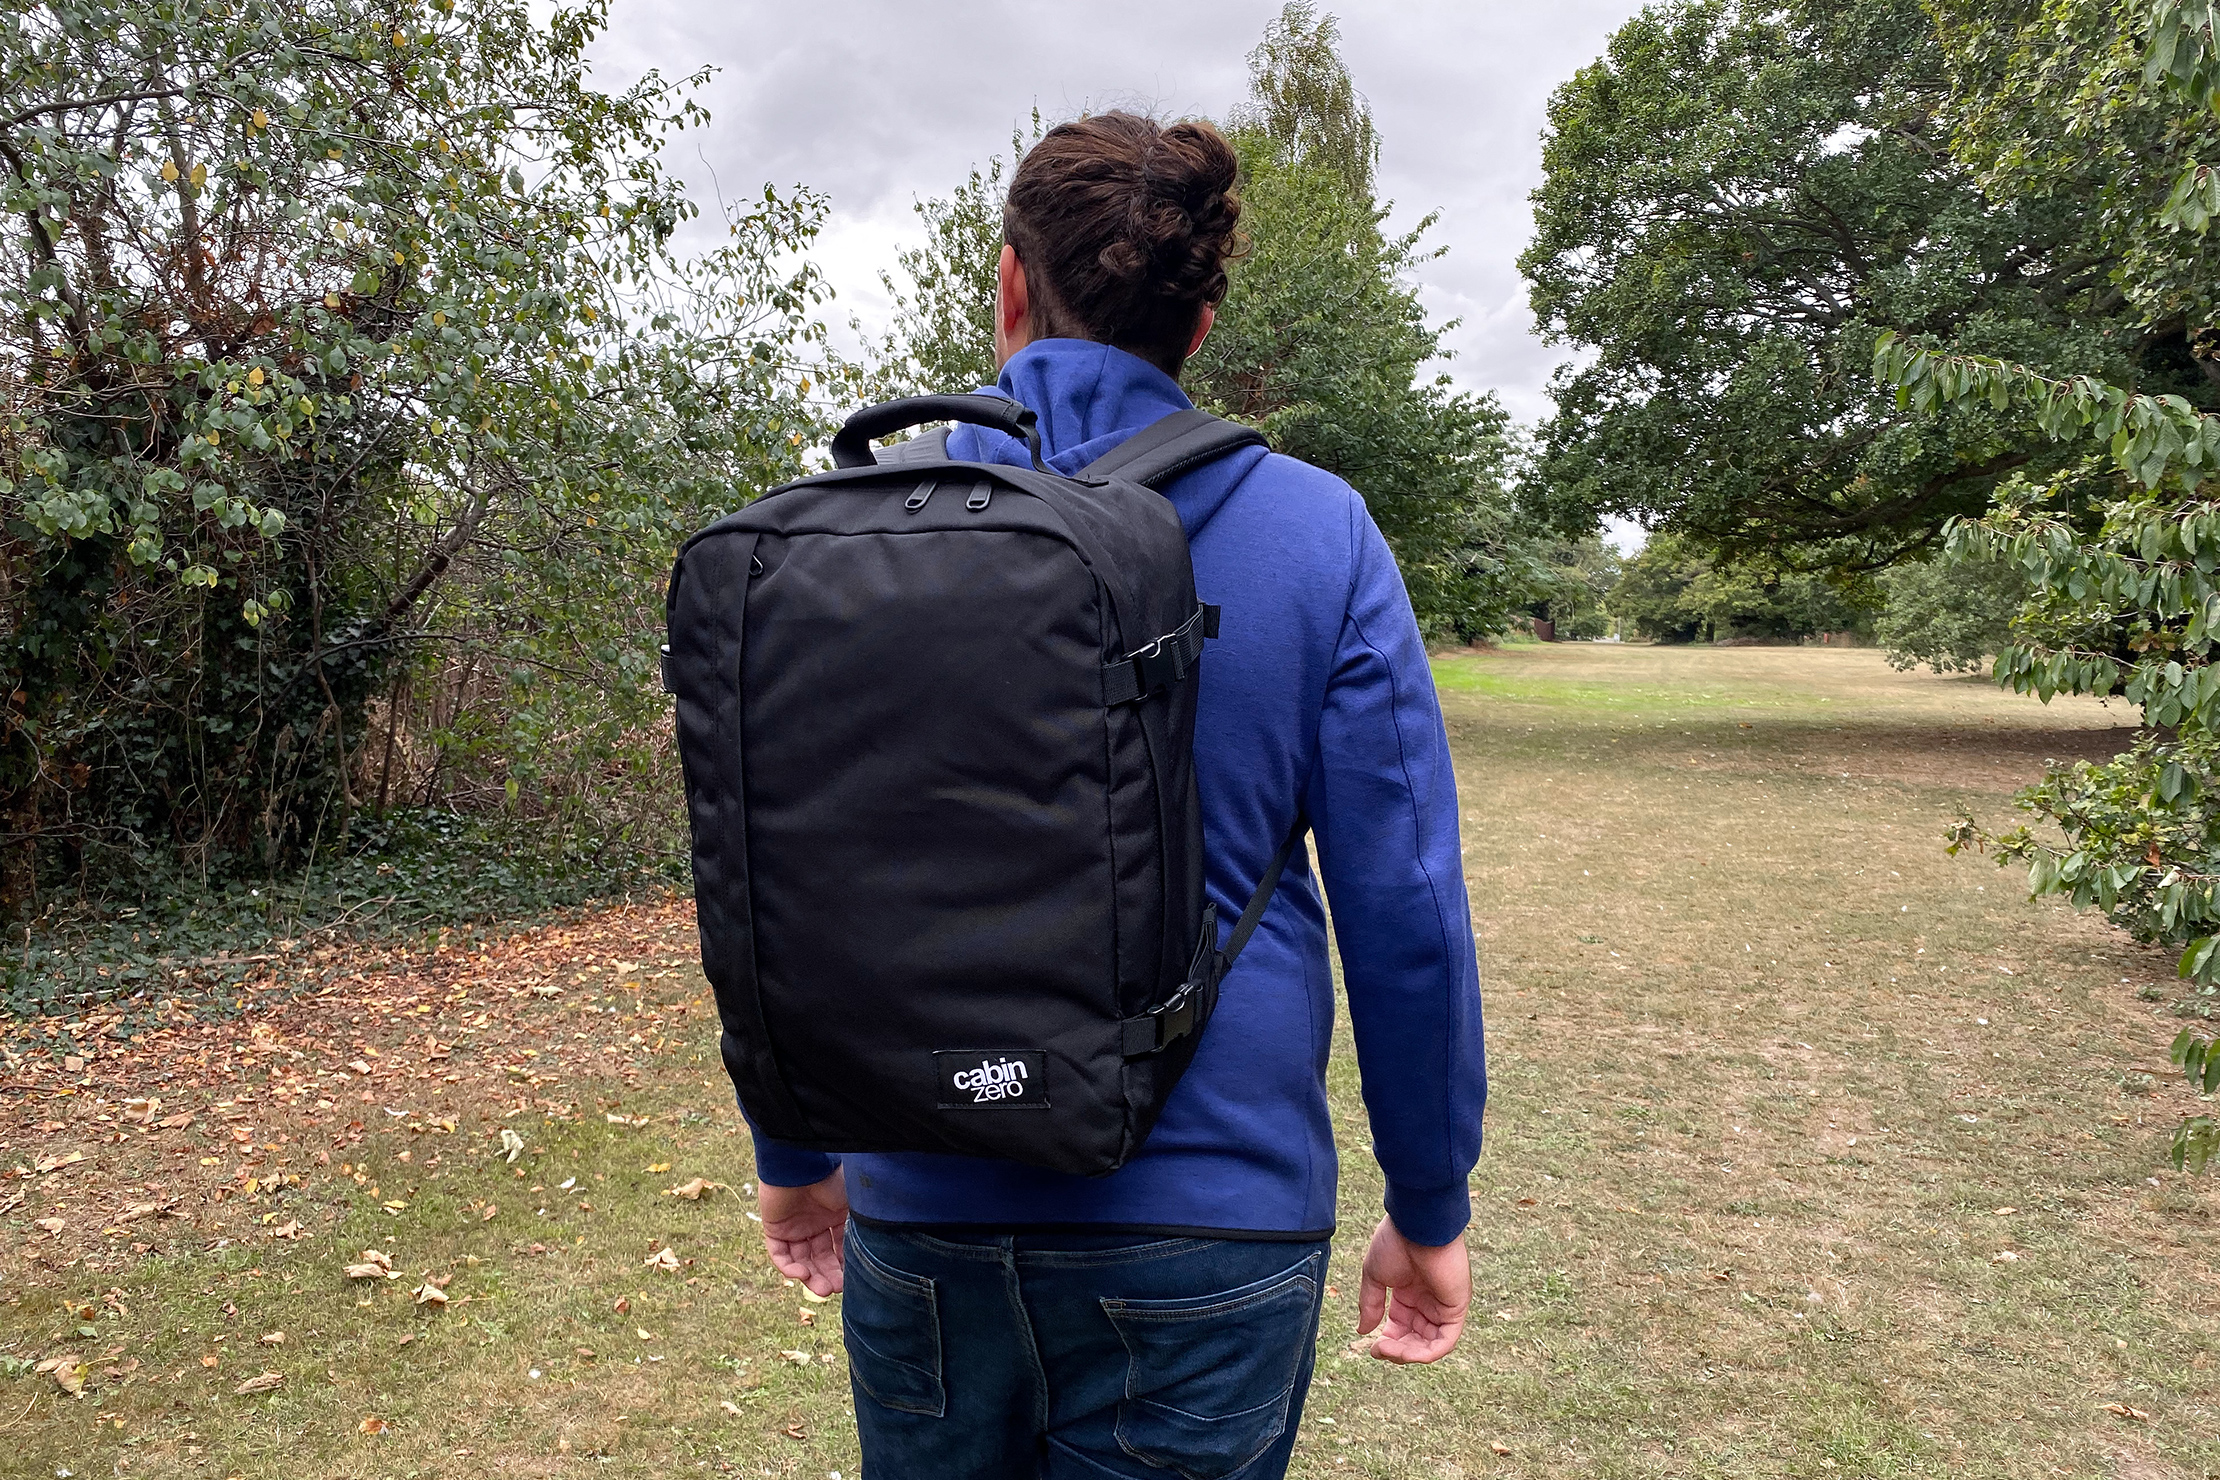 CabinZero Classic Travel Backpack In Essex, England